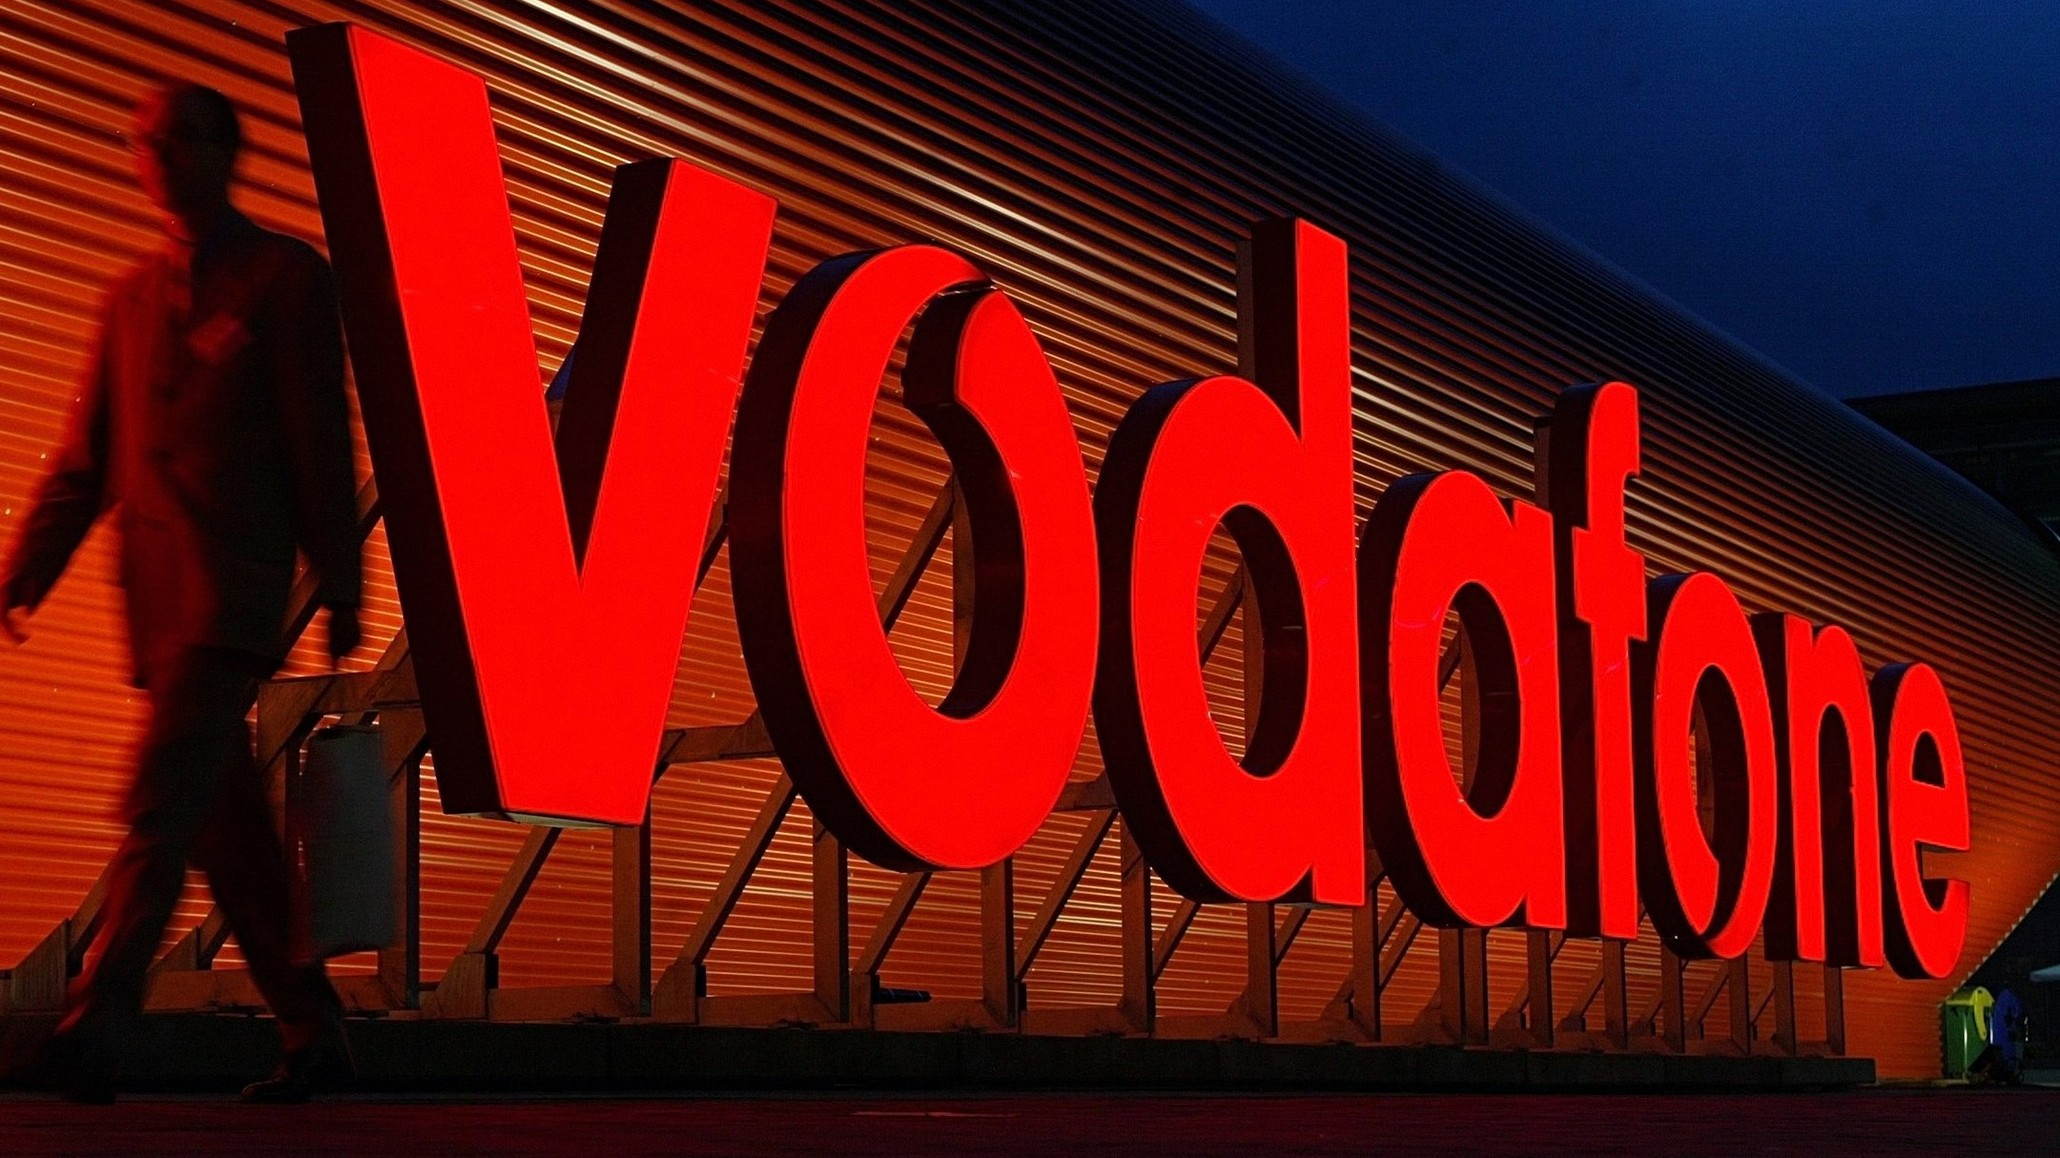 vodafone_night_logo